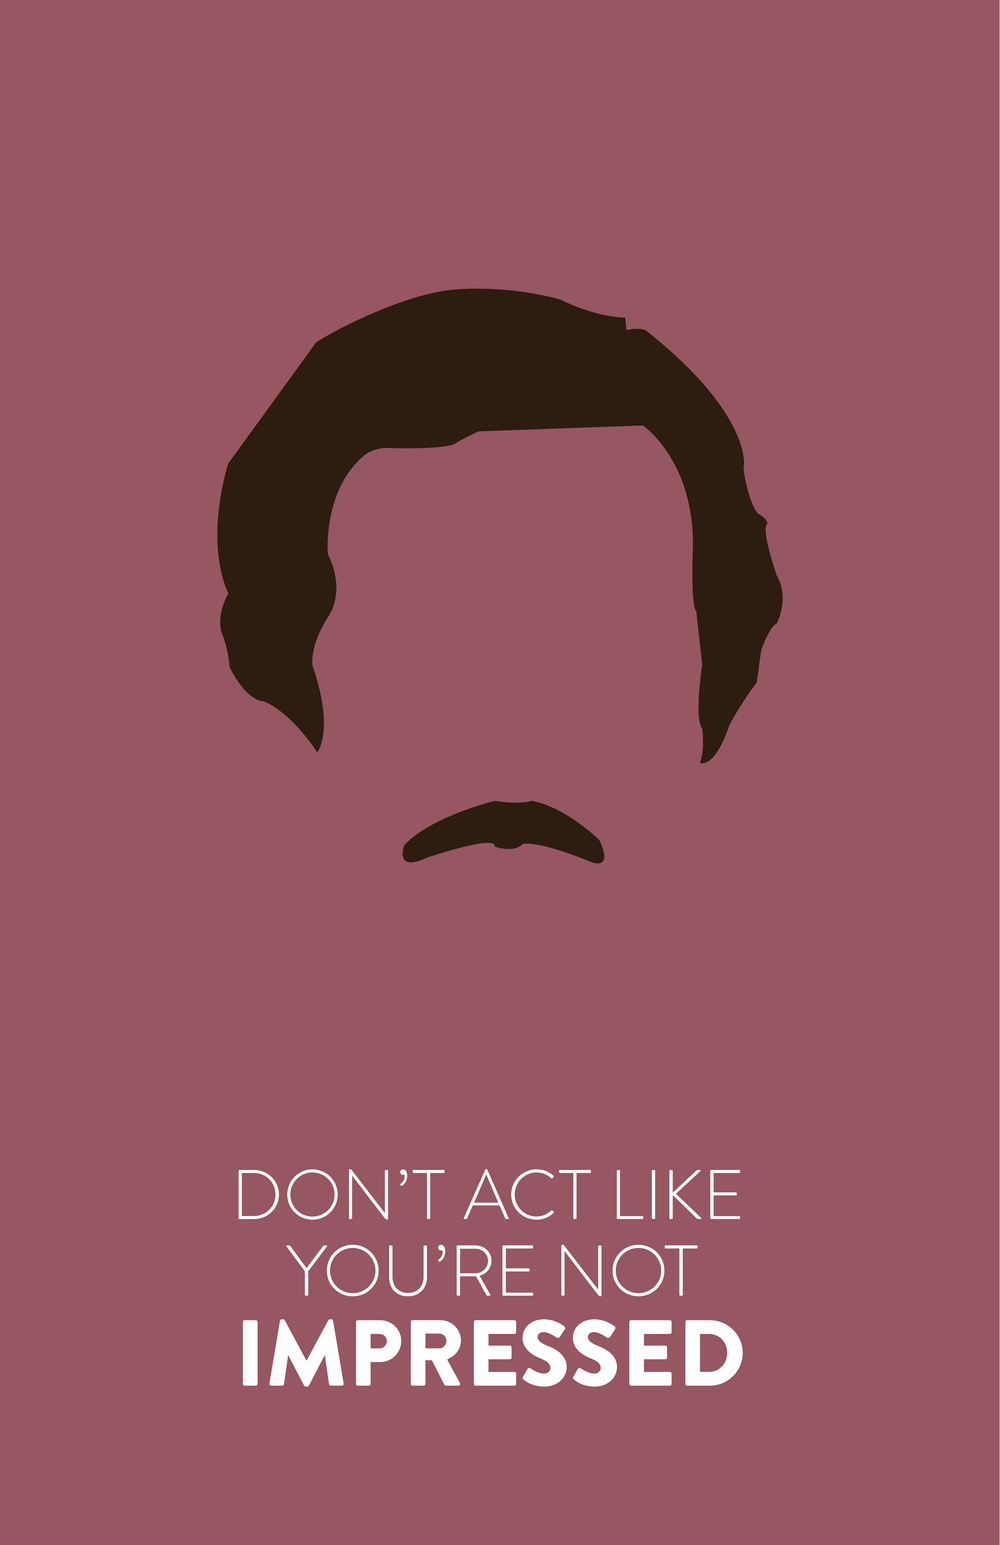 MINIMALIST MOVIE POSTERS u2014 Hayley Lane